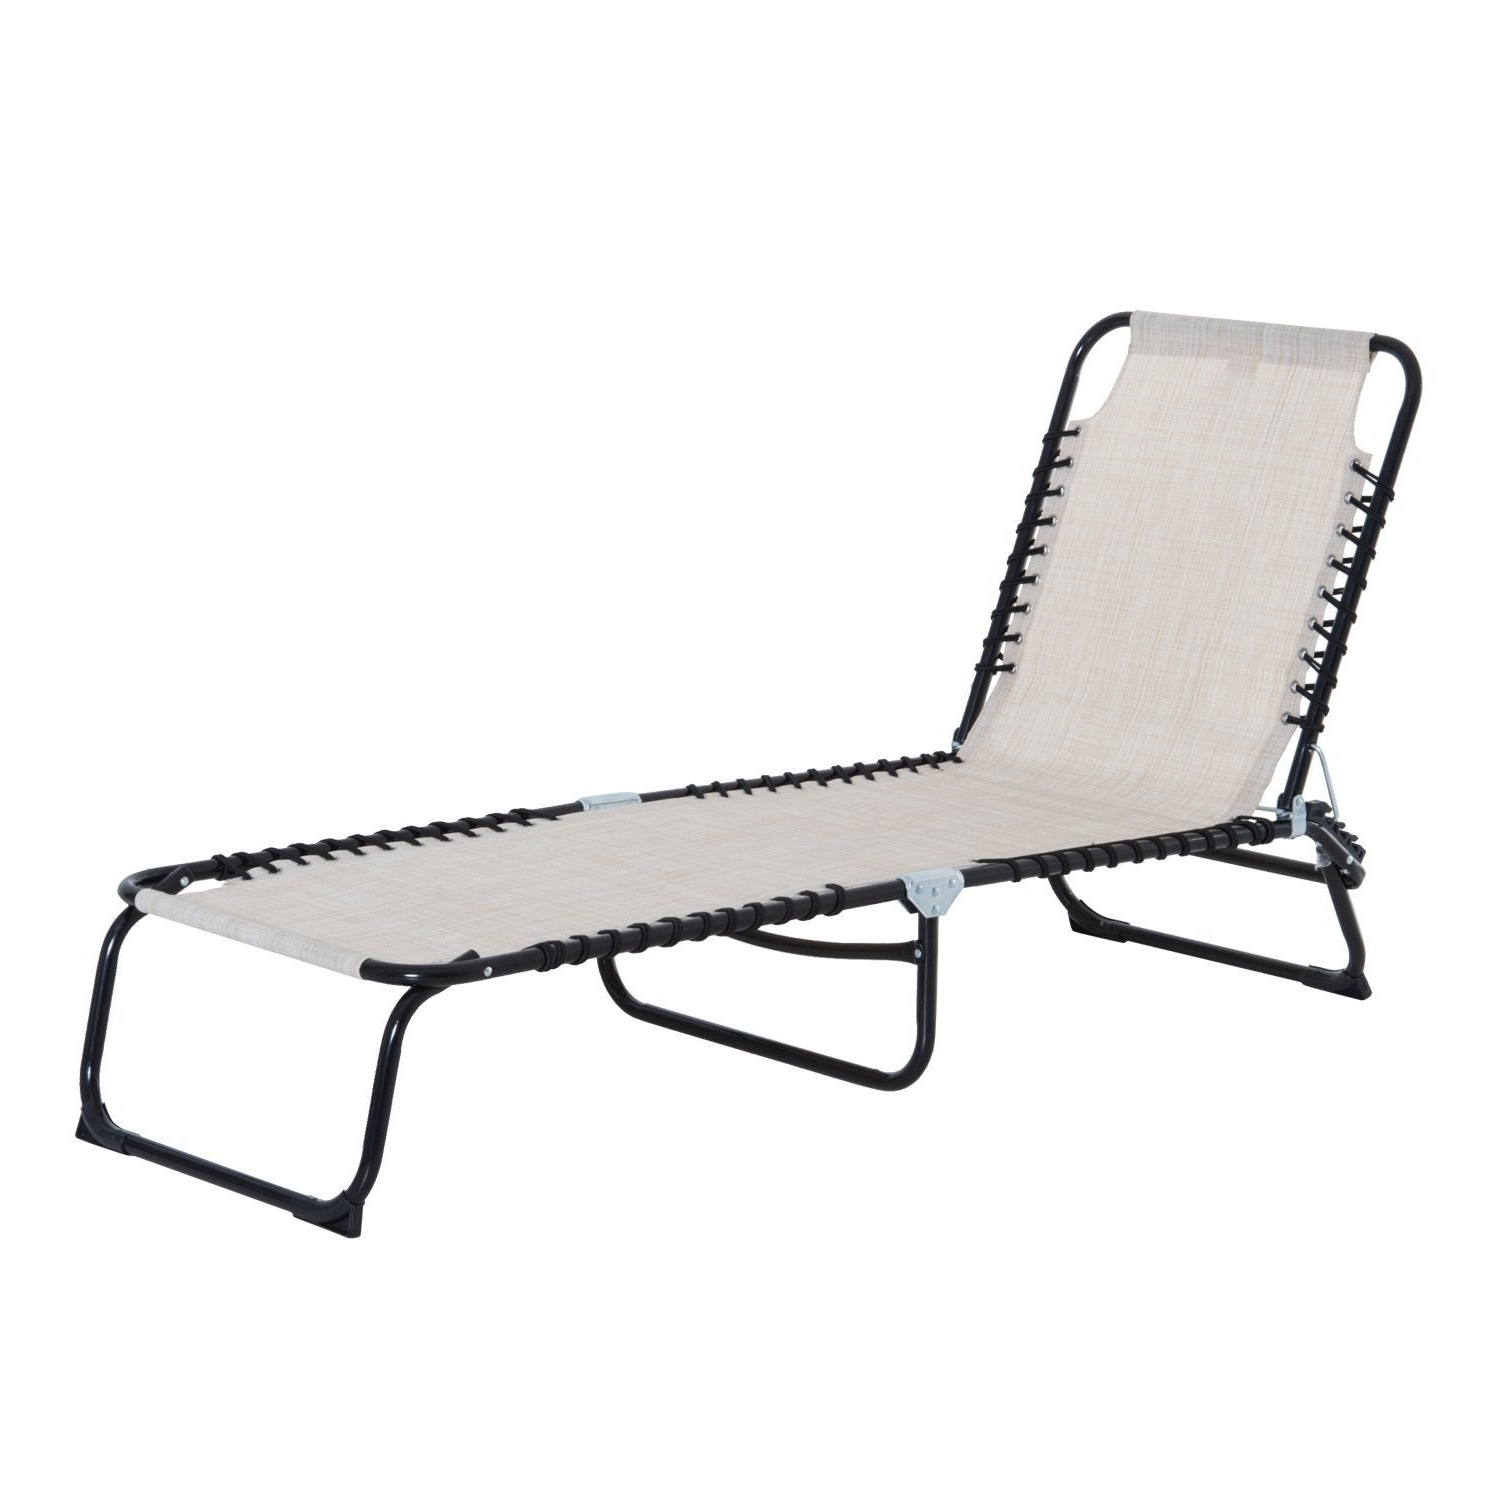 Outsunny 3 Position Portable Reclining Beach Chaise Lounge Folding Chair Outdoor Patio – Cream White Inside Current Reclining Sling Chaise Lounges (View 8 of 25)